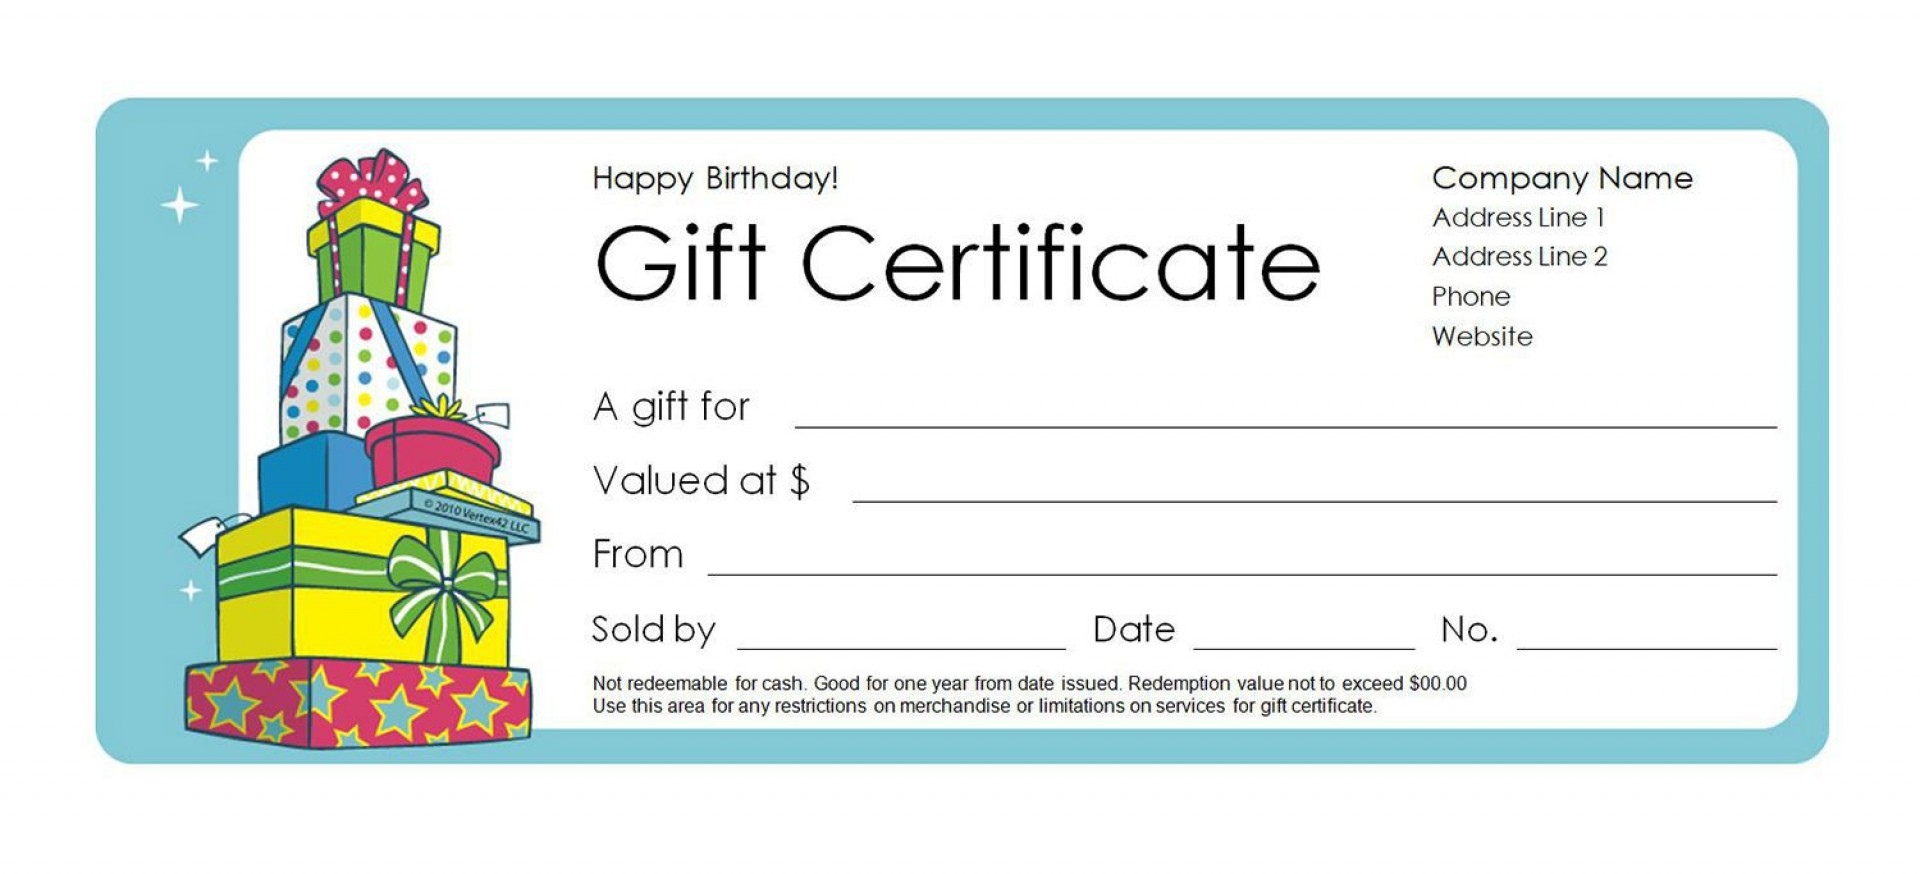 003 Archaicawful Template For Gift Certificate Idea  Voucher Word Free Printable In1920